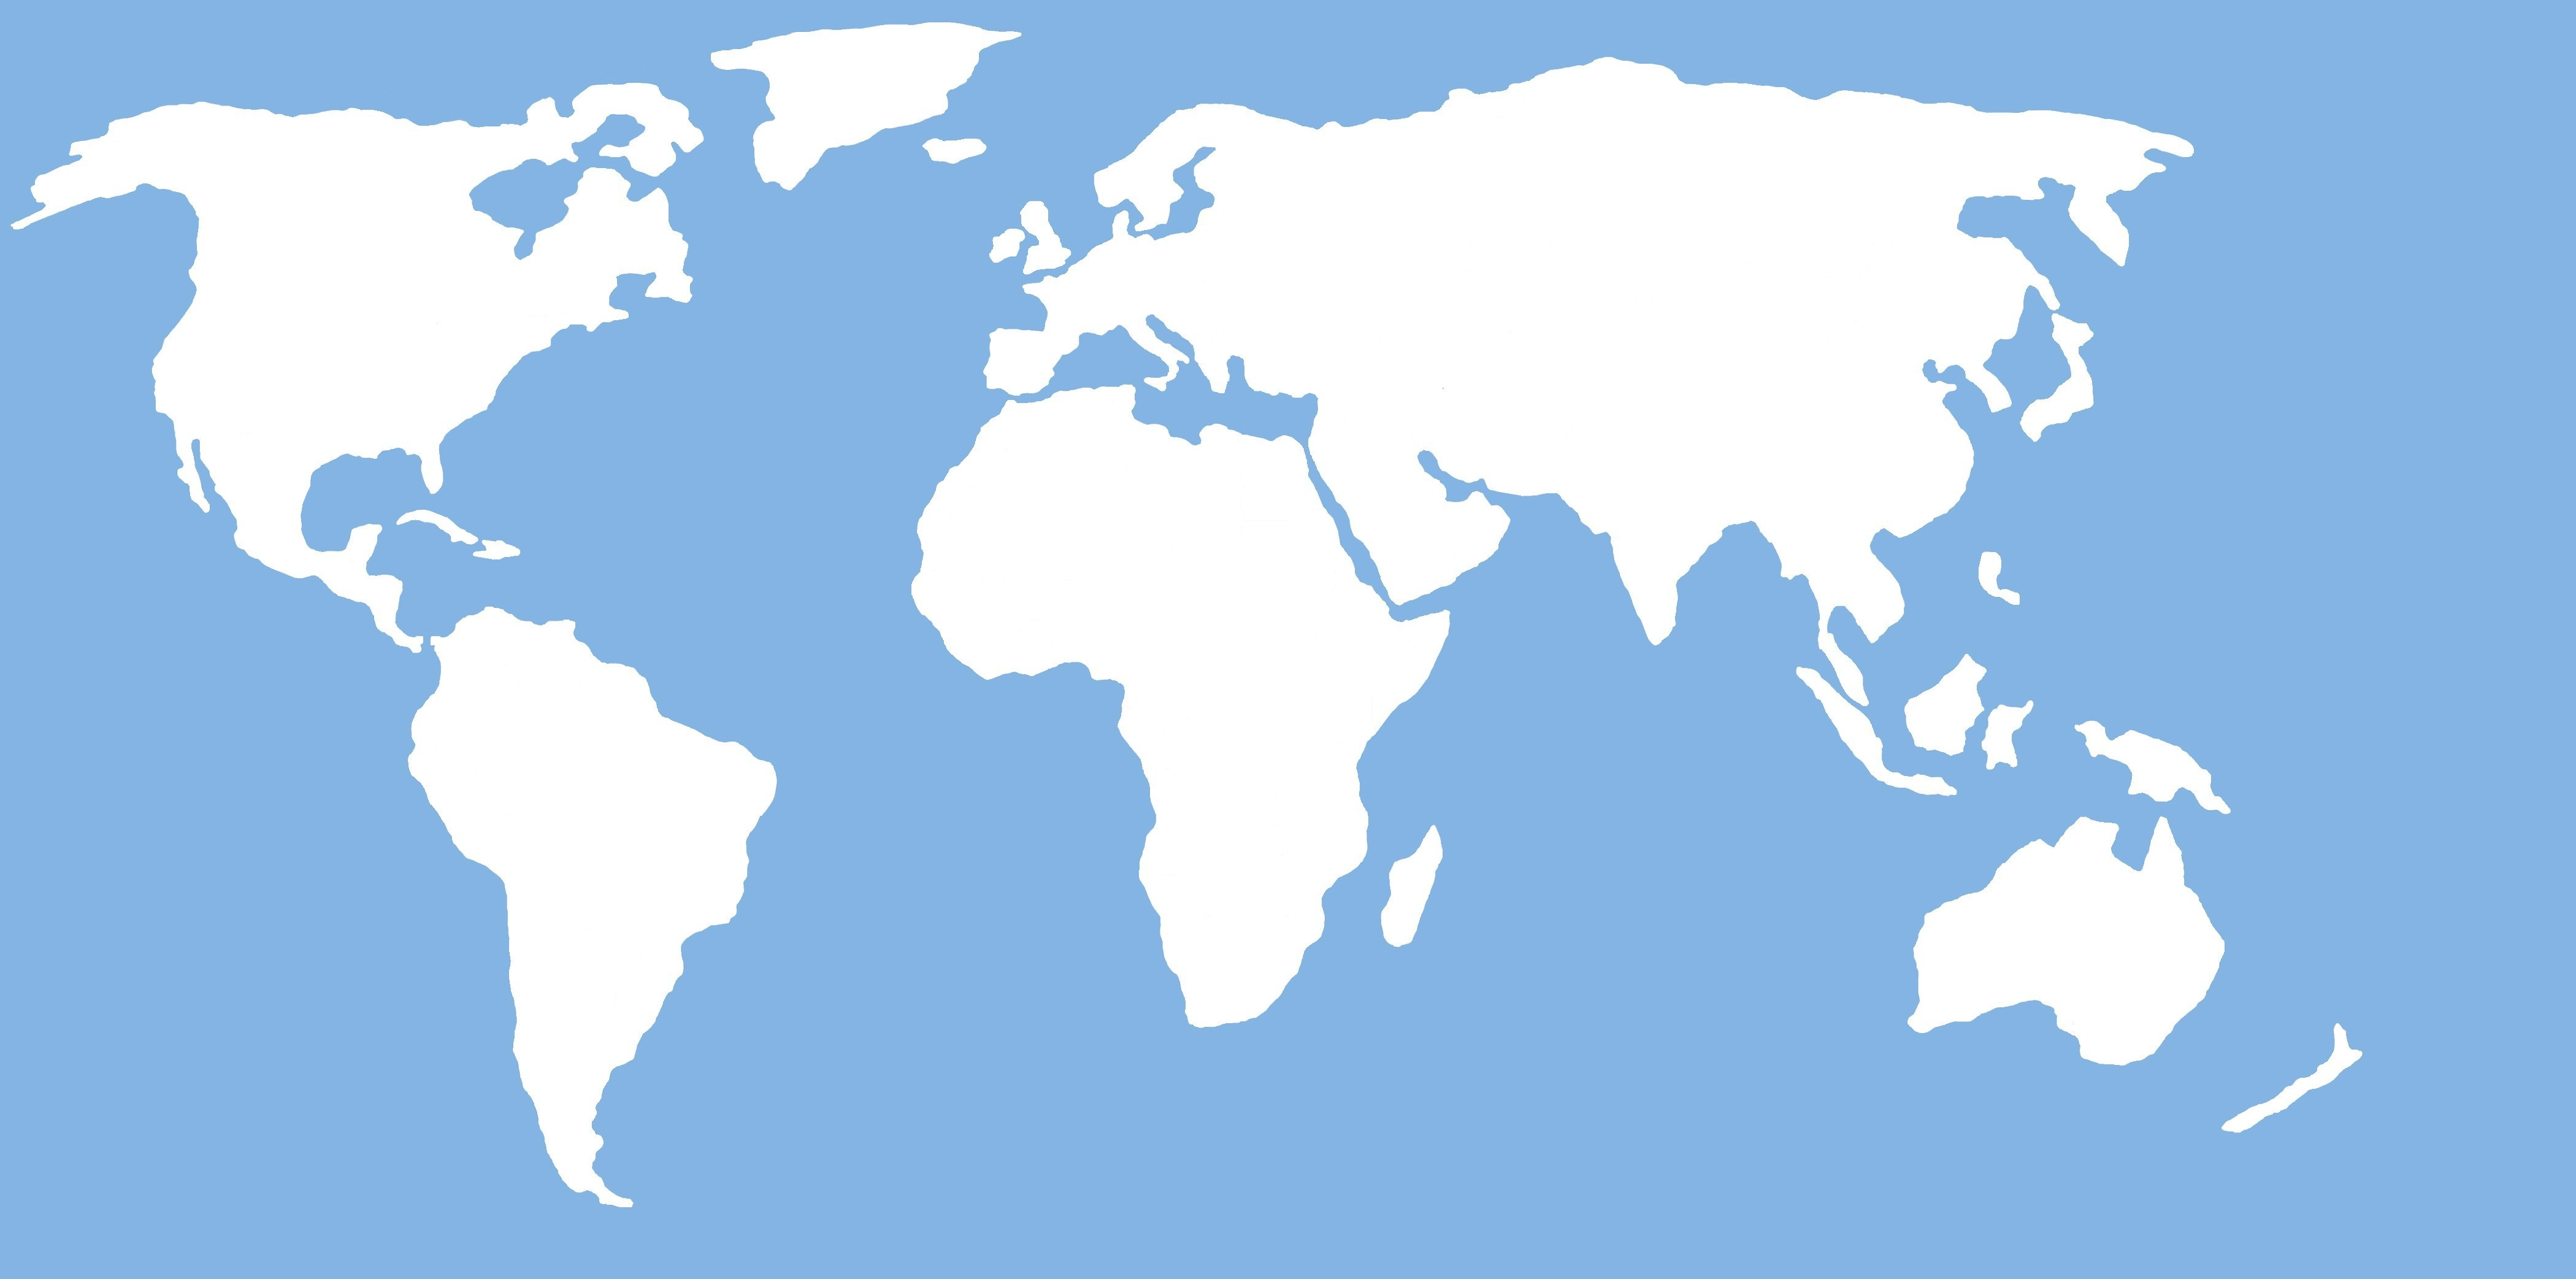 World Map Clipart Png 5 Png Image